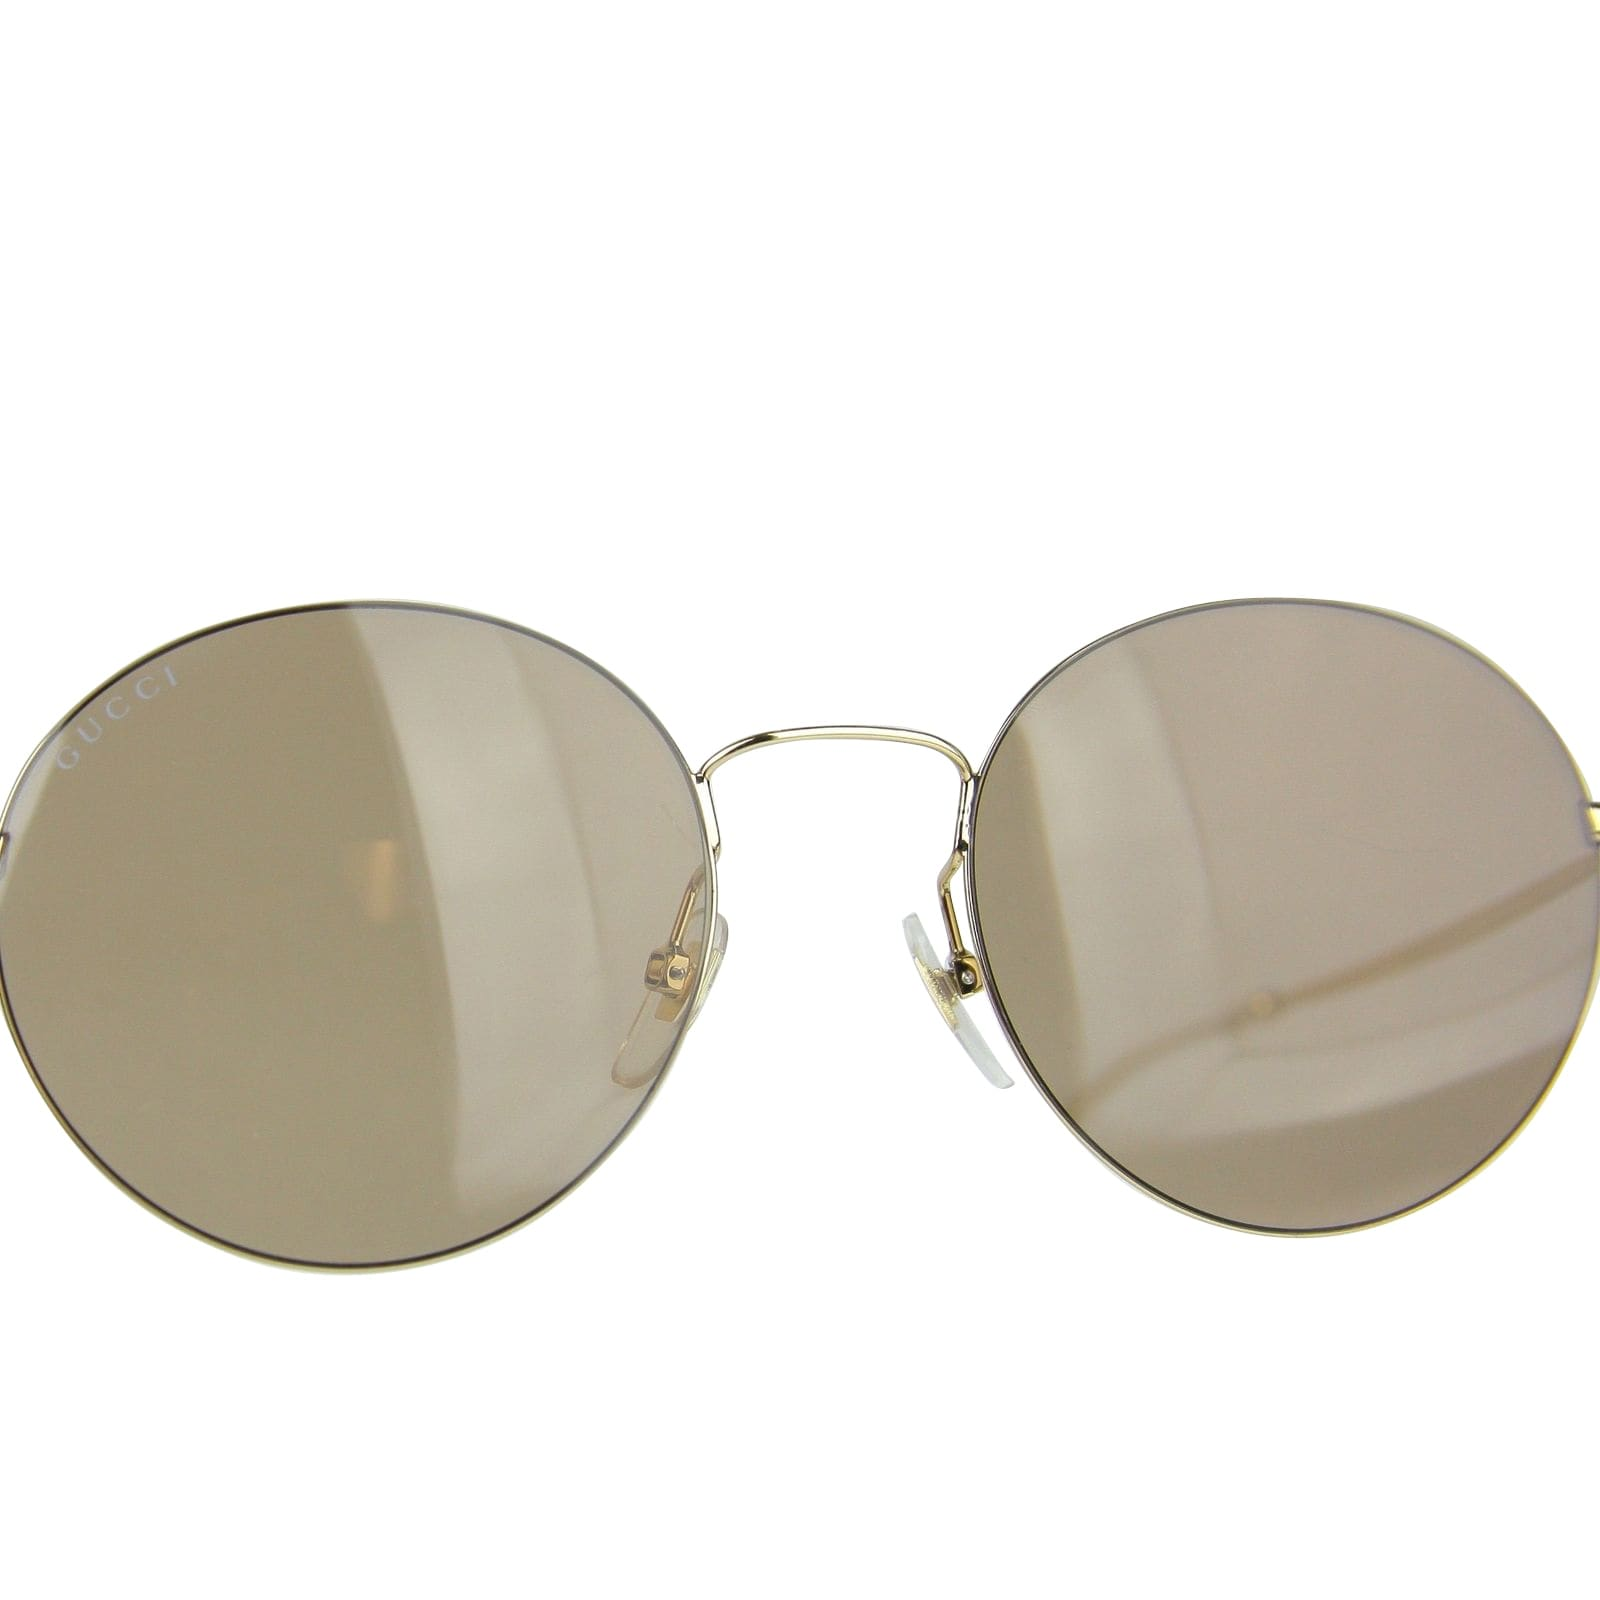 d72d0b38455 Gucci Unisex Round Gold Metal Sunglasses With Logo GG 4273 S 3YGMI 391327  8903 - One size